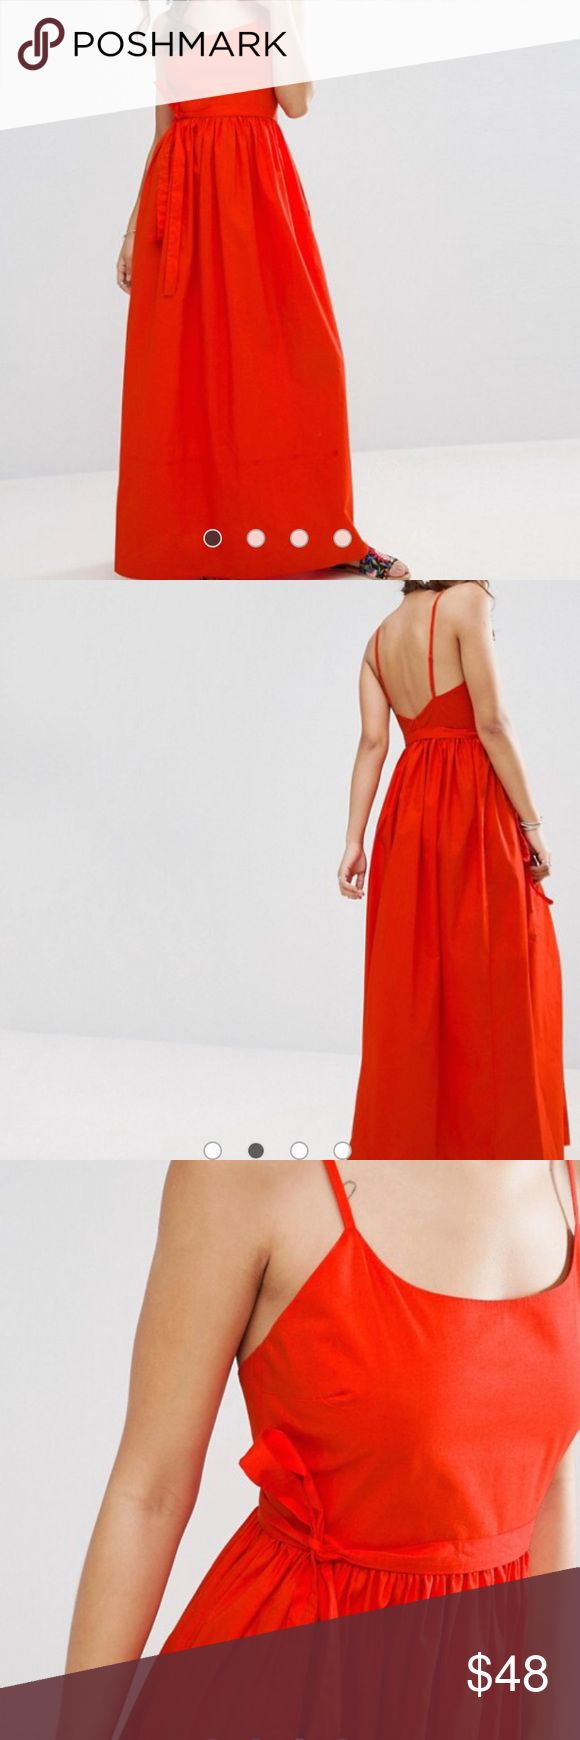 NWT ASOS RED MAXI DRESS WITH OPEN BACK Brand new!  Still in packaging. Asos Dresses Maxi